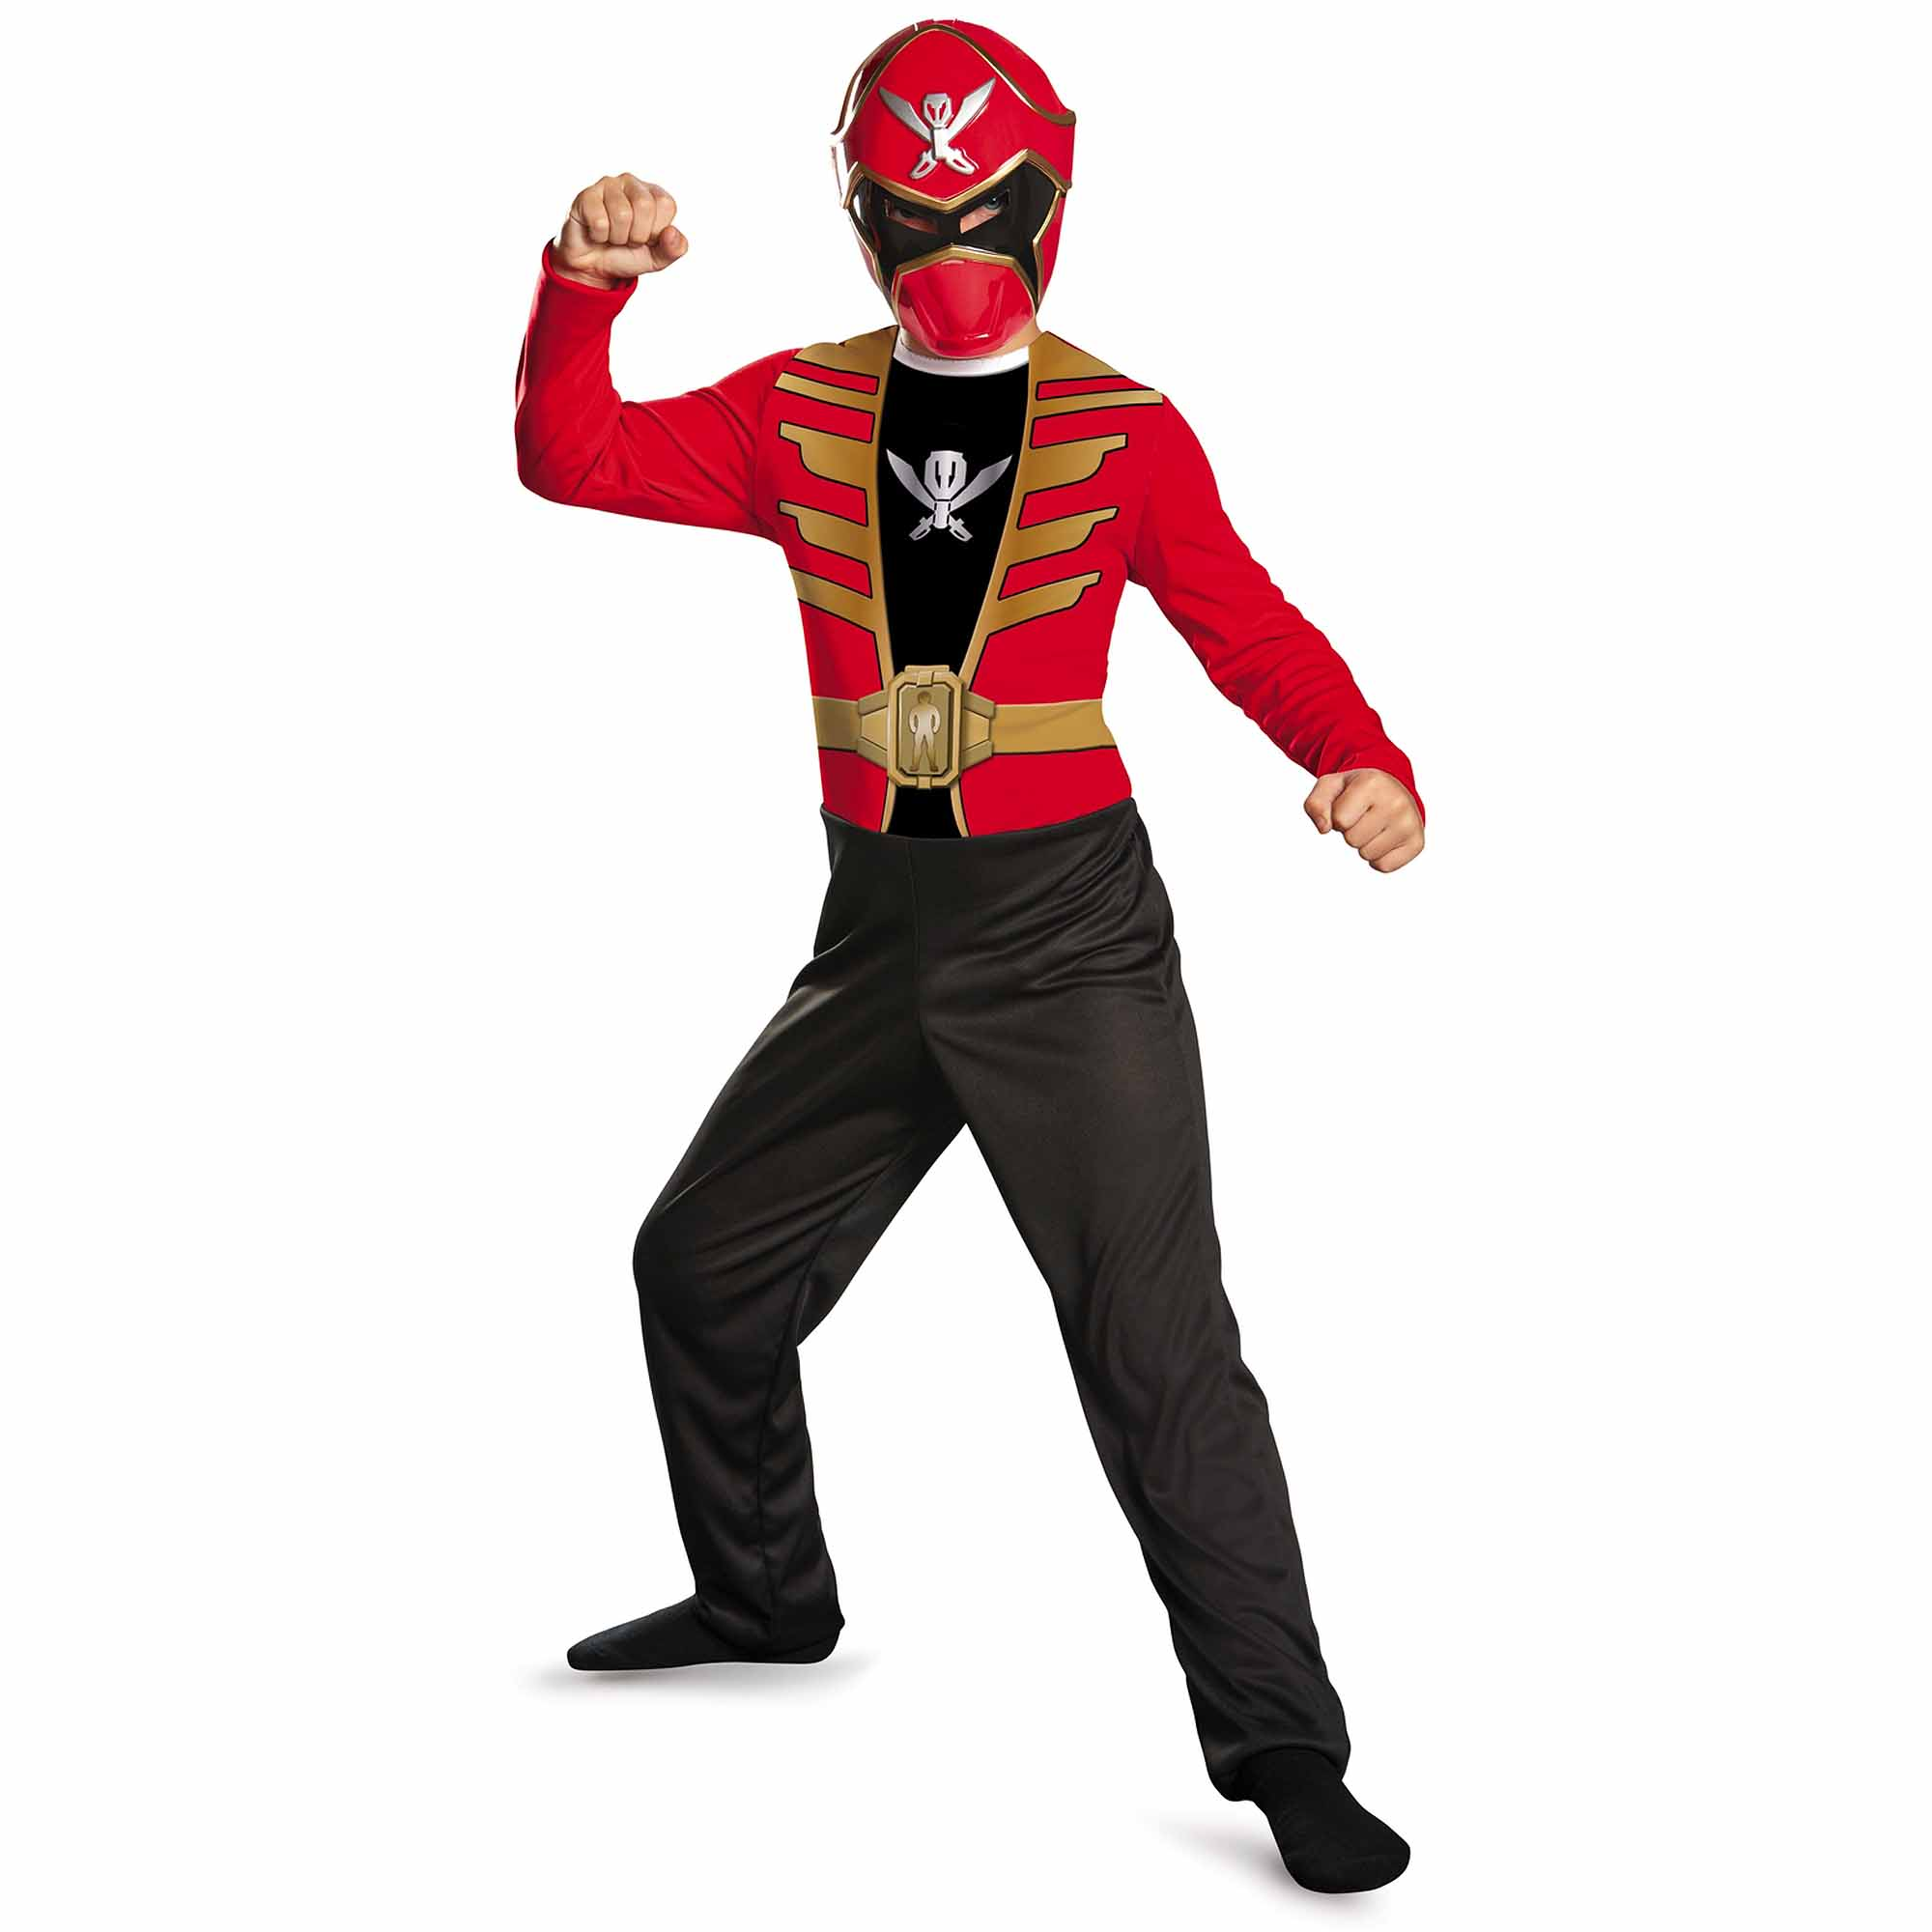 Red Ranger Basic Child Halloween Costume